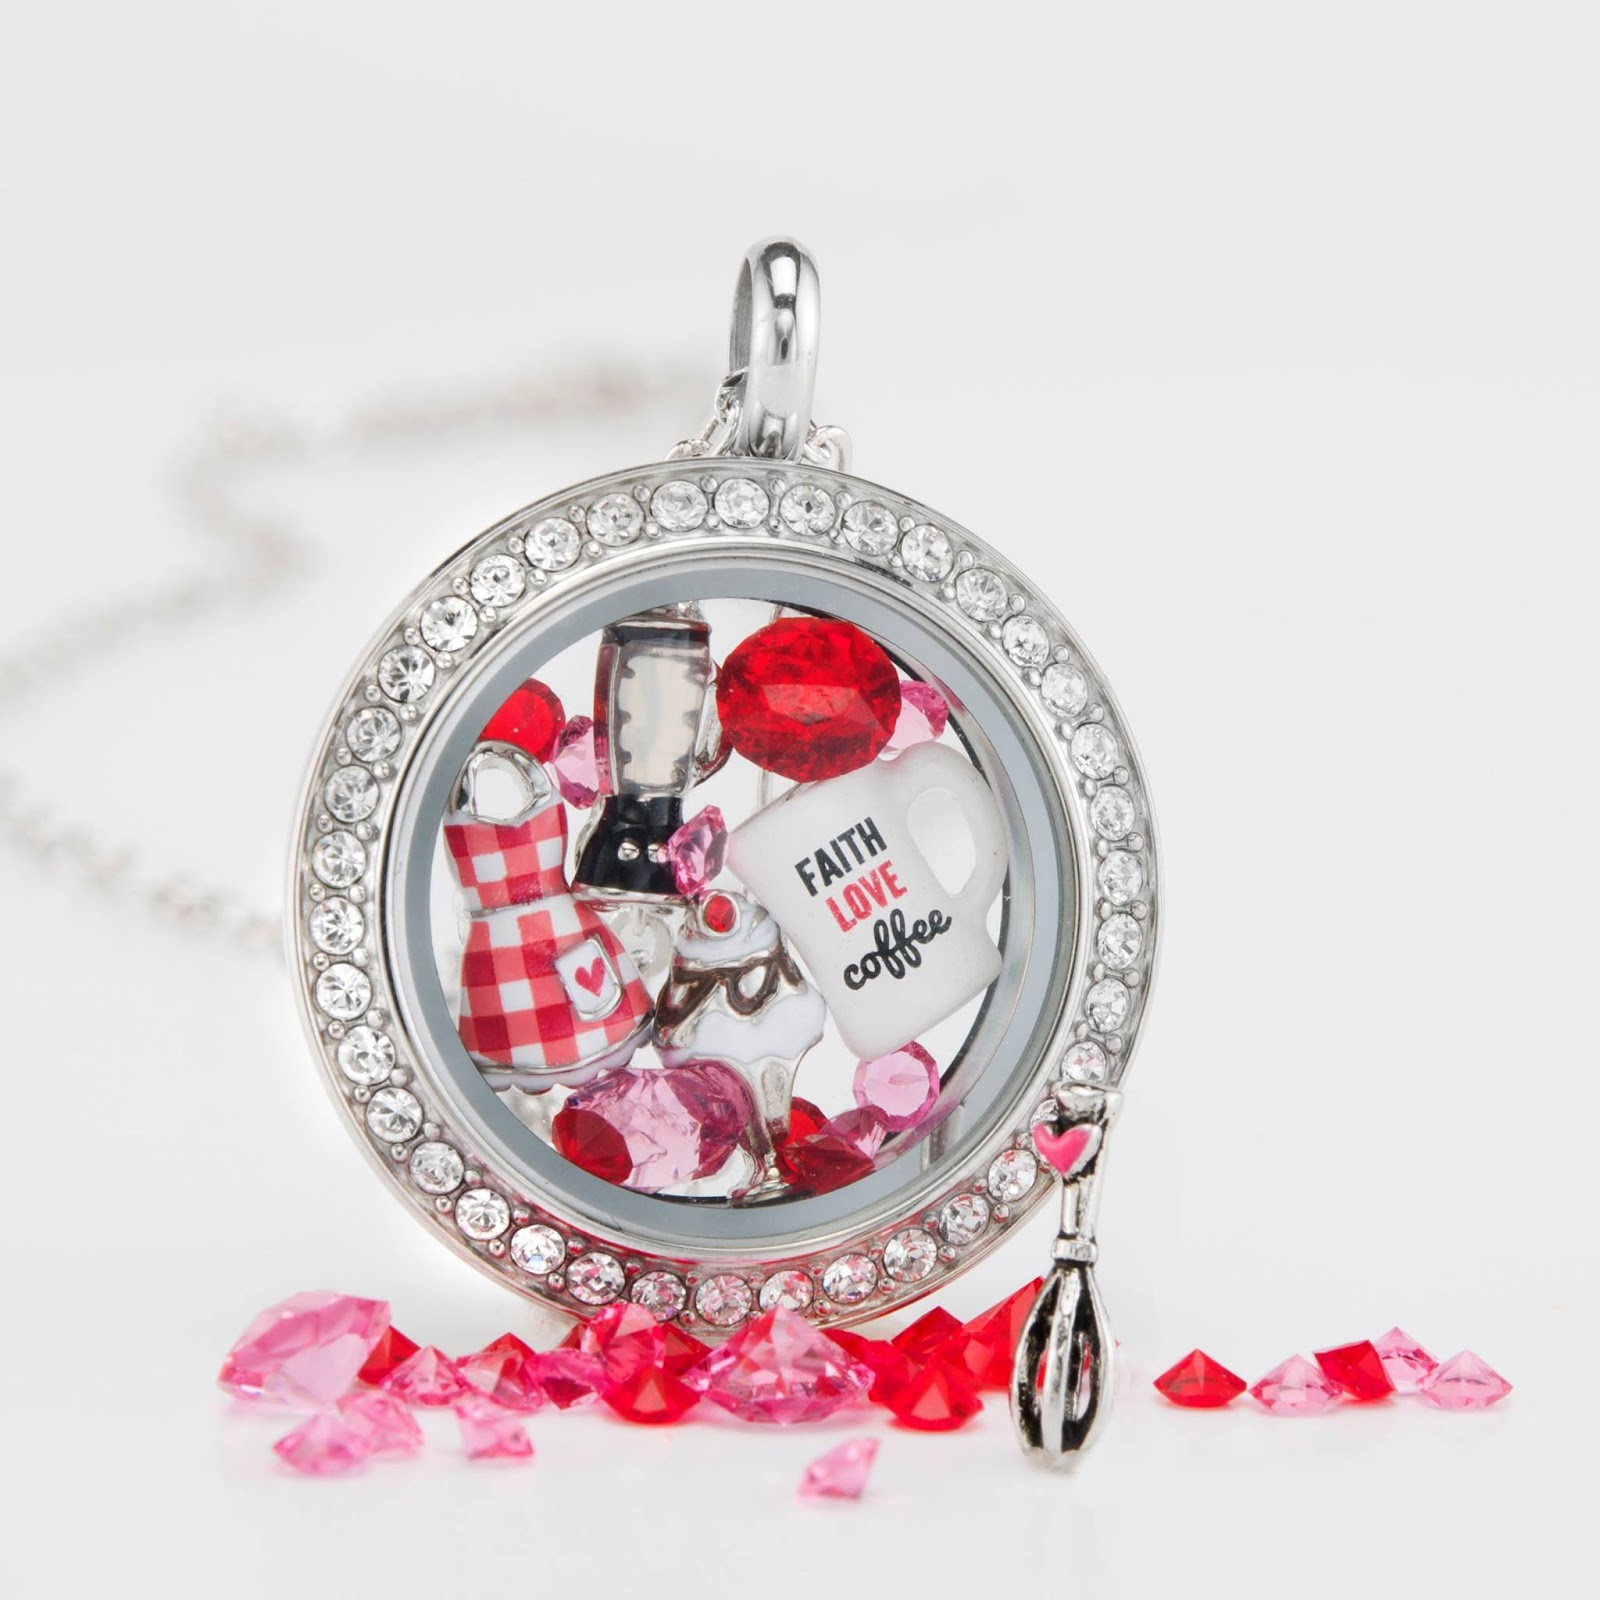 Spring into brighter days with origami owl mama loves little these lockets serve as a way to tell your own unique story through fun charms lockets can be worn on necklaces bracelets and even rings jeuxipadfo Gallery